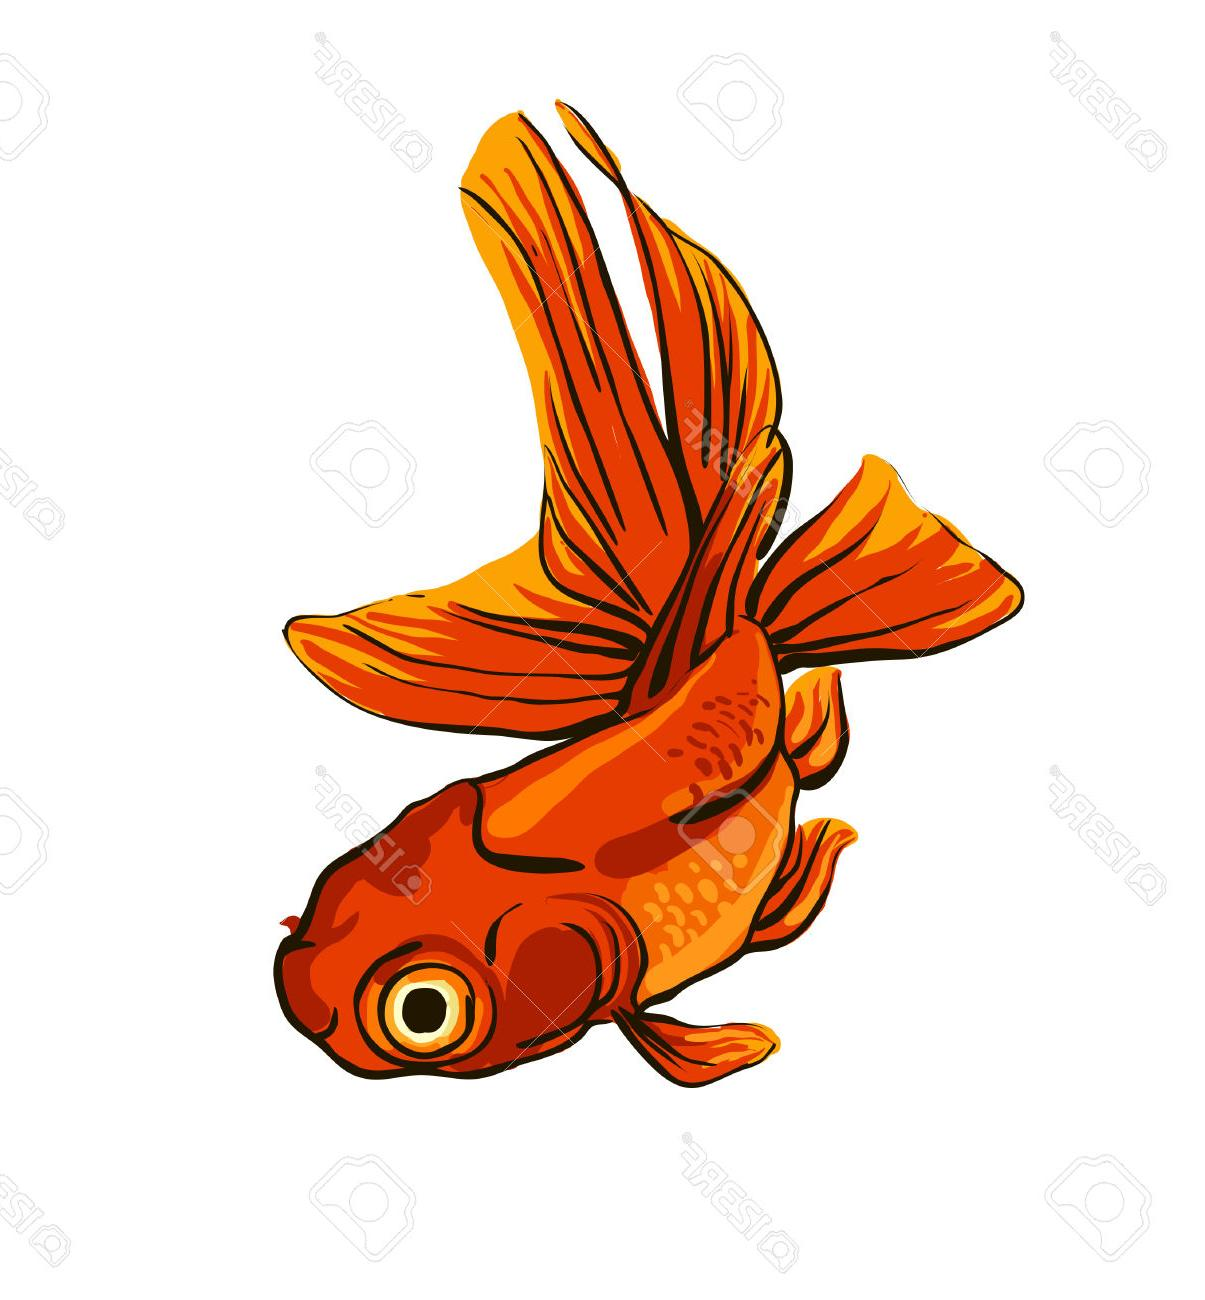 Goldfish clipart. Best red fish file